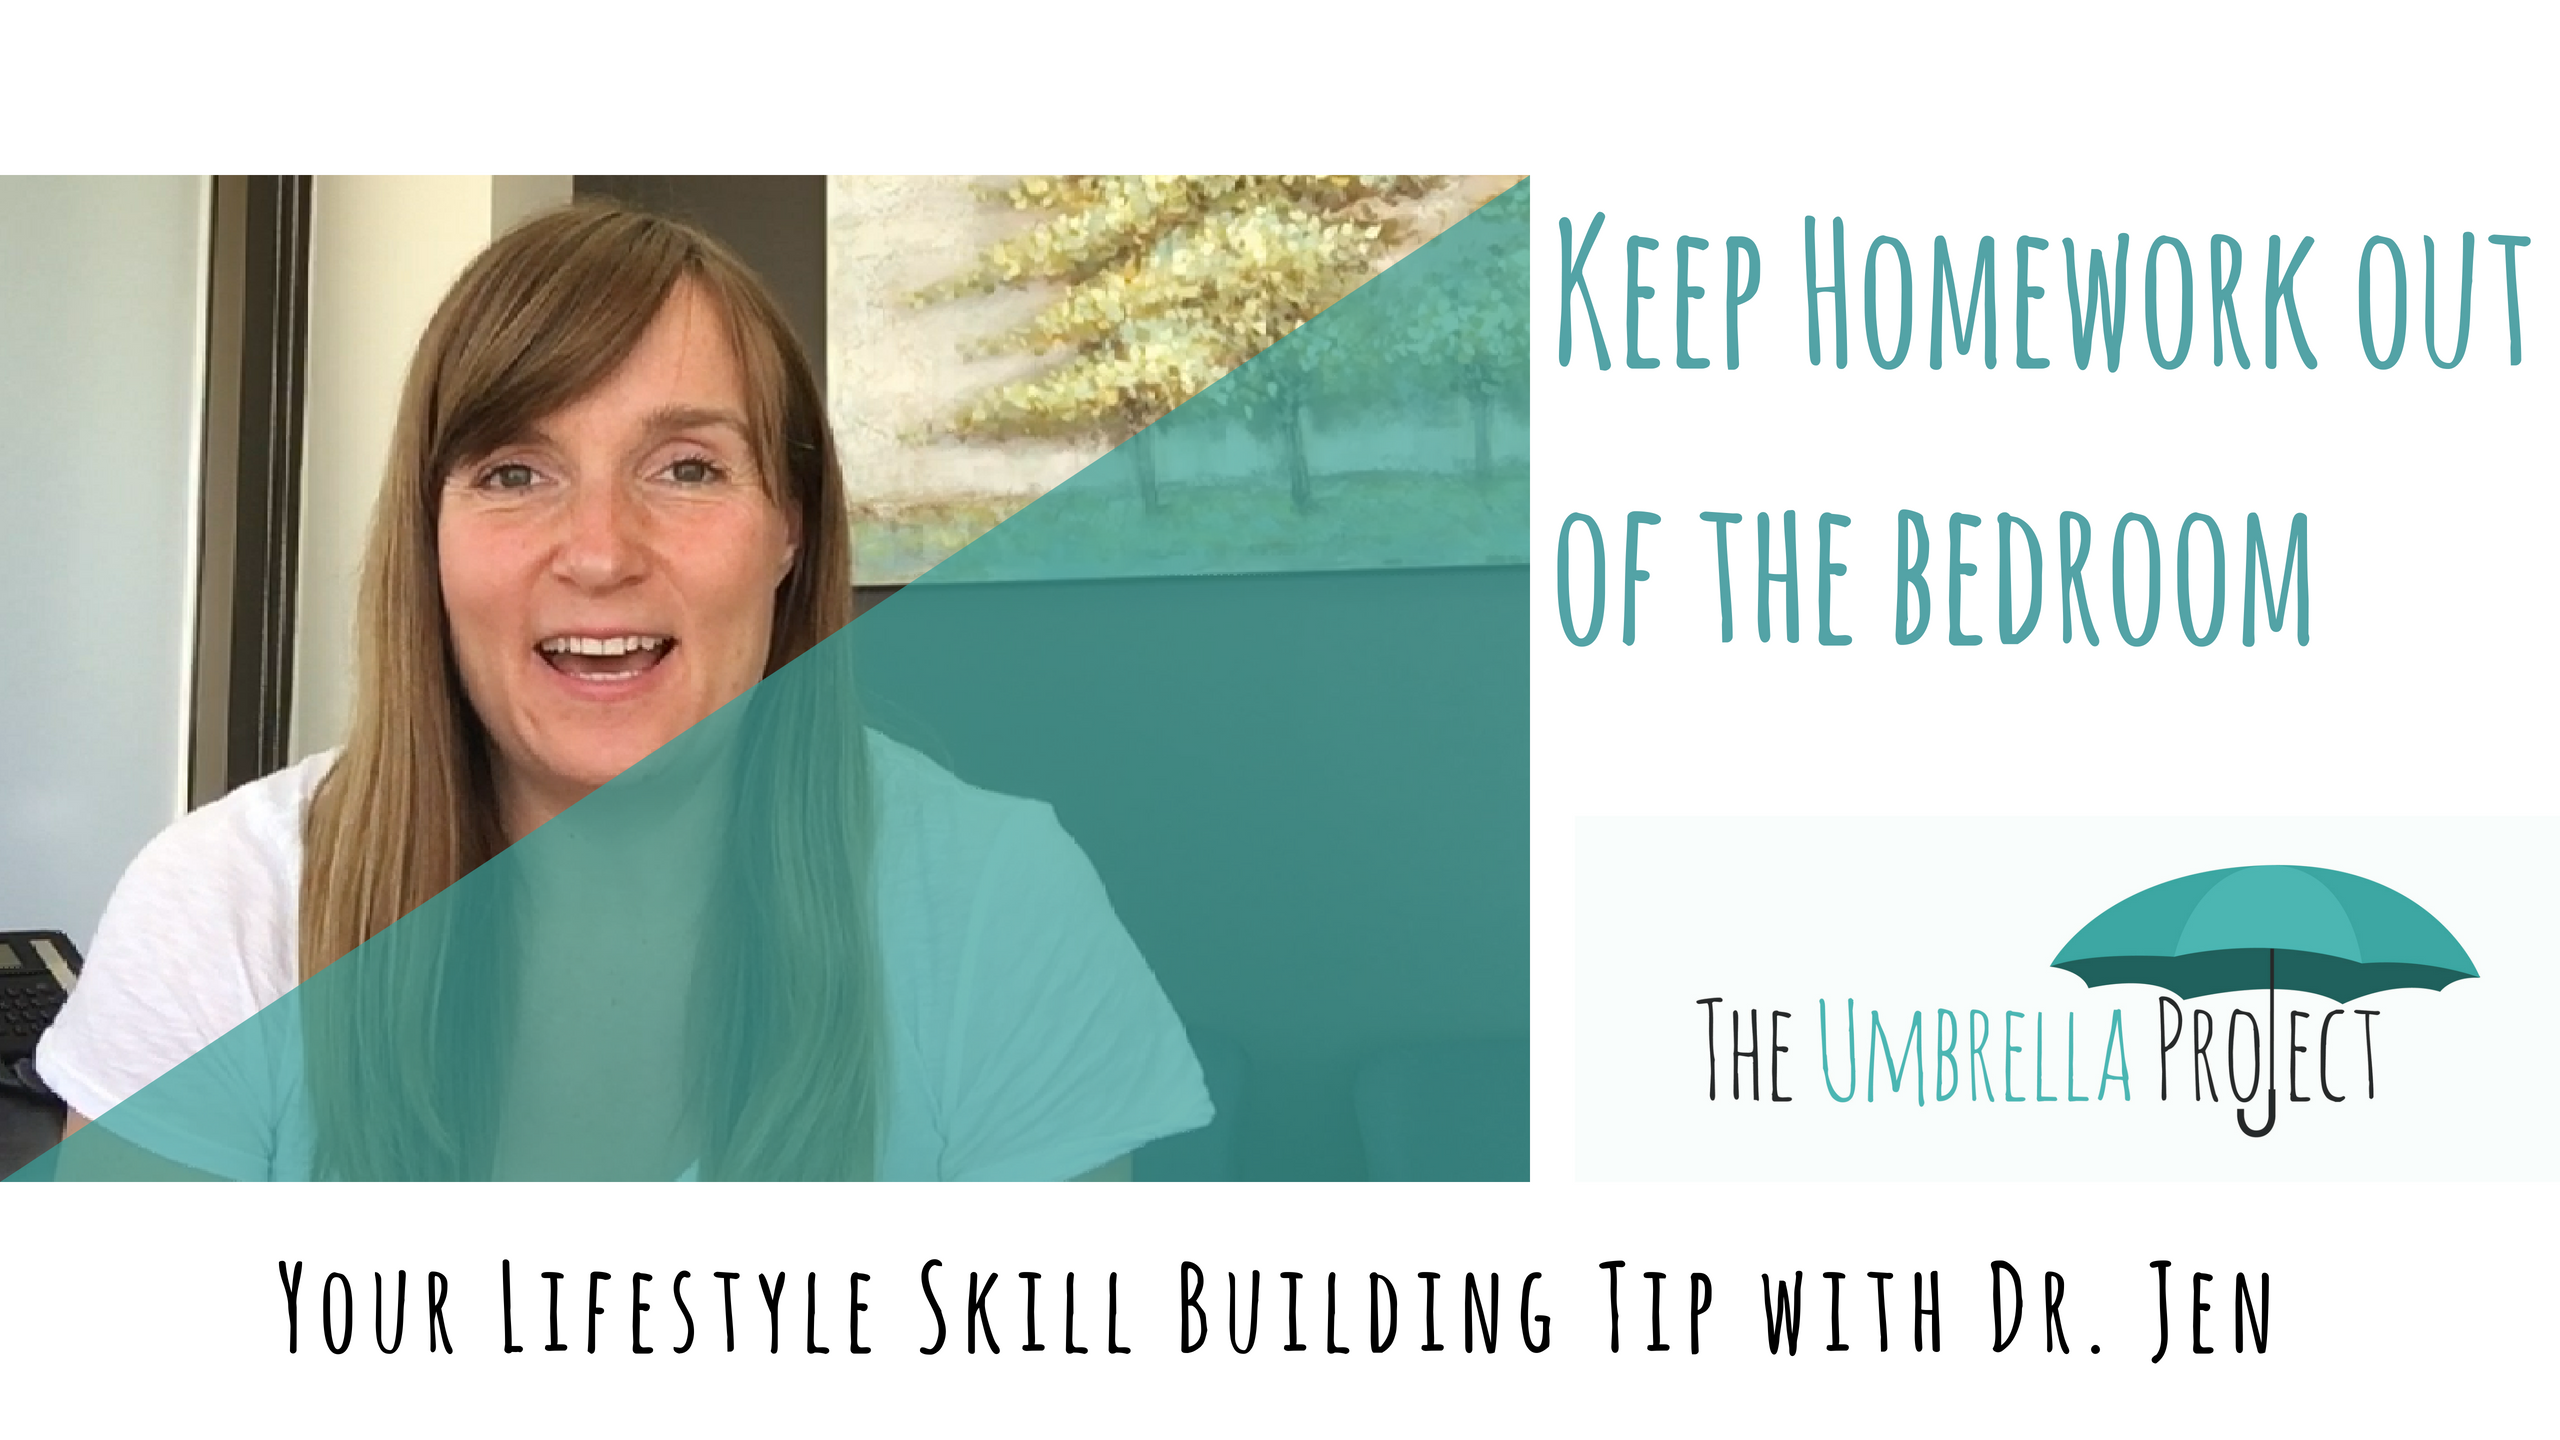 Keep Homework Out of the Bedroom: Your Lifestyle Skill Building Tip with Dr. Jen